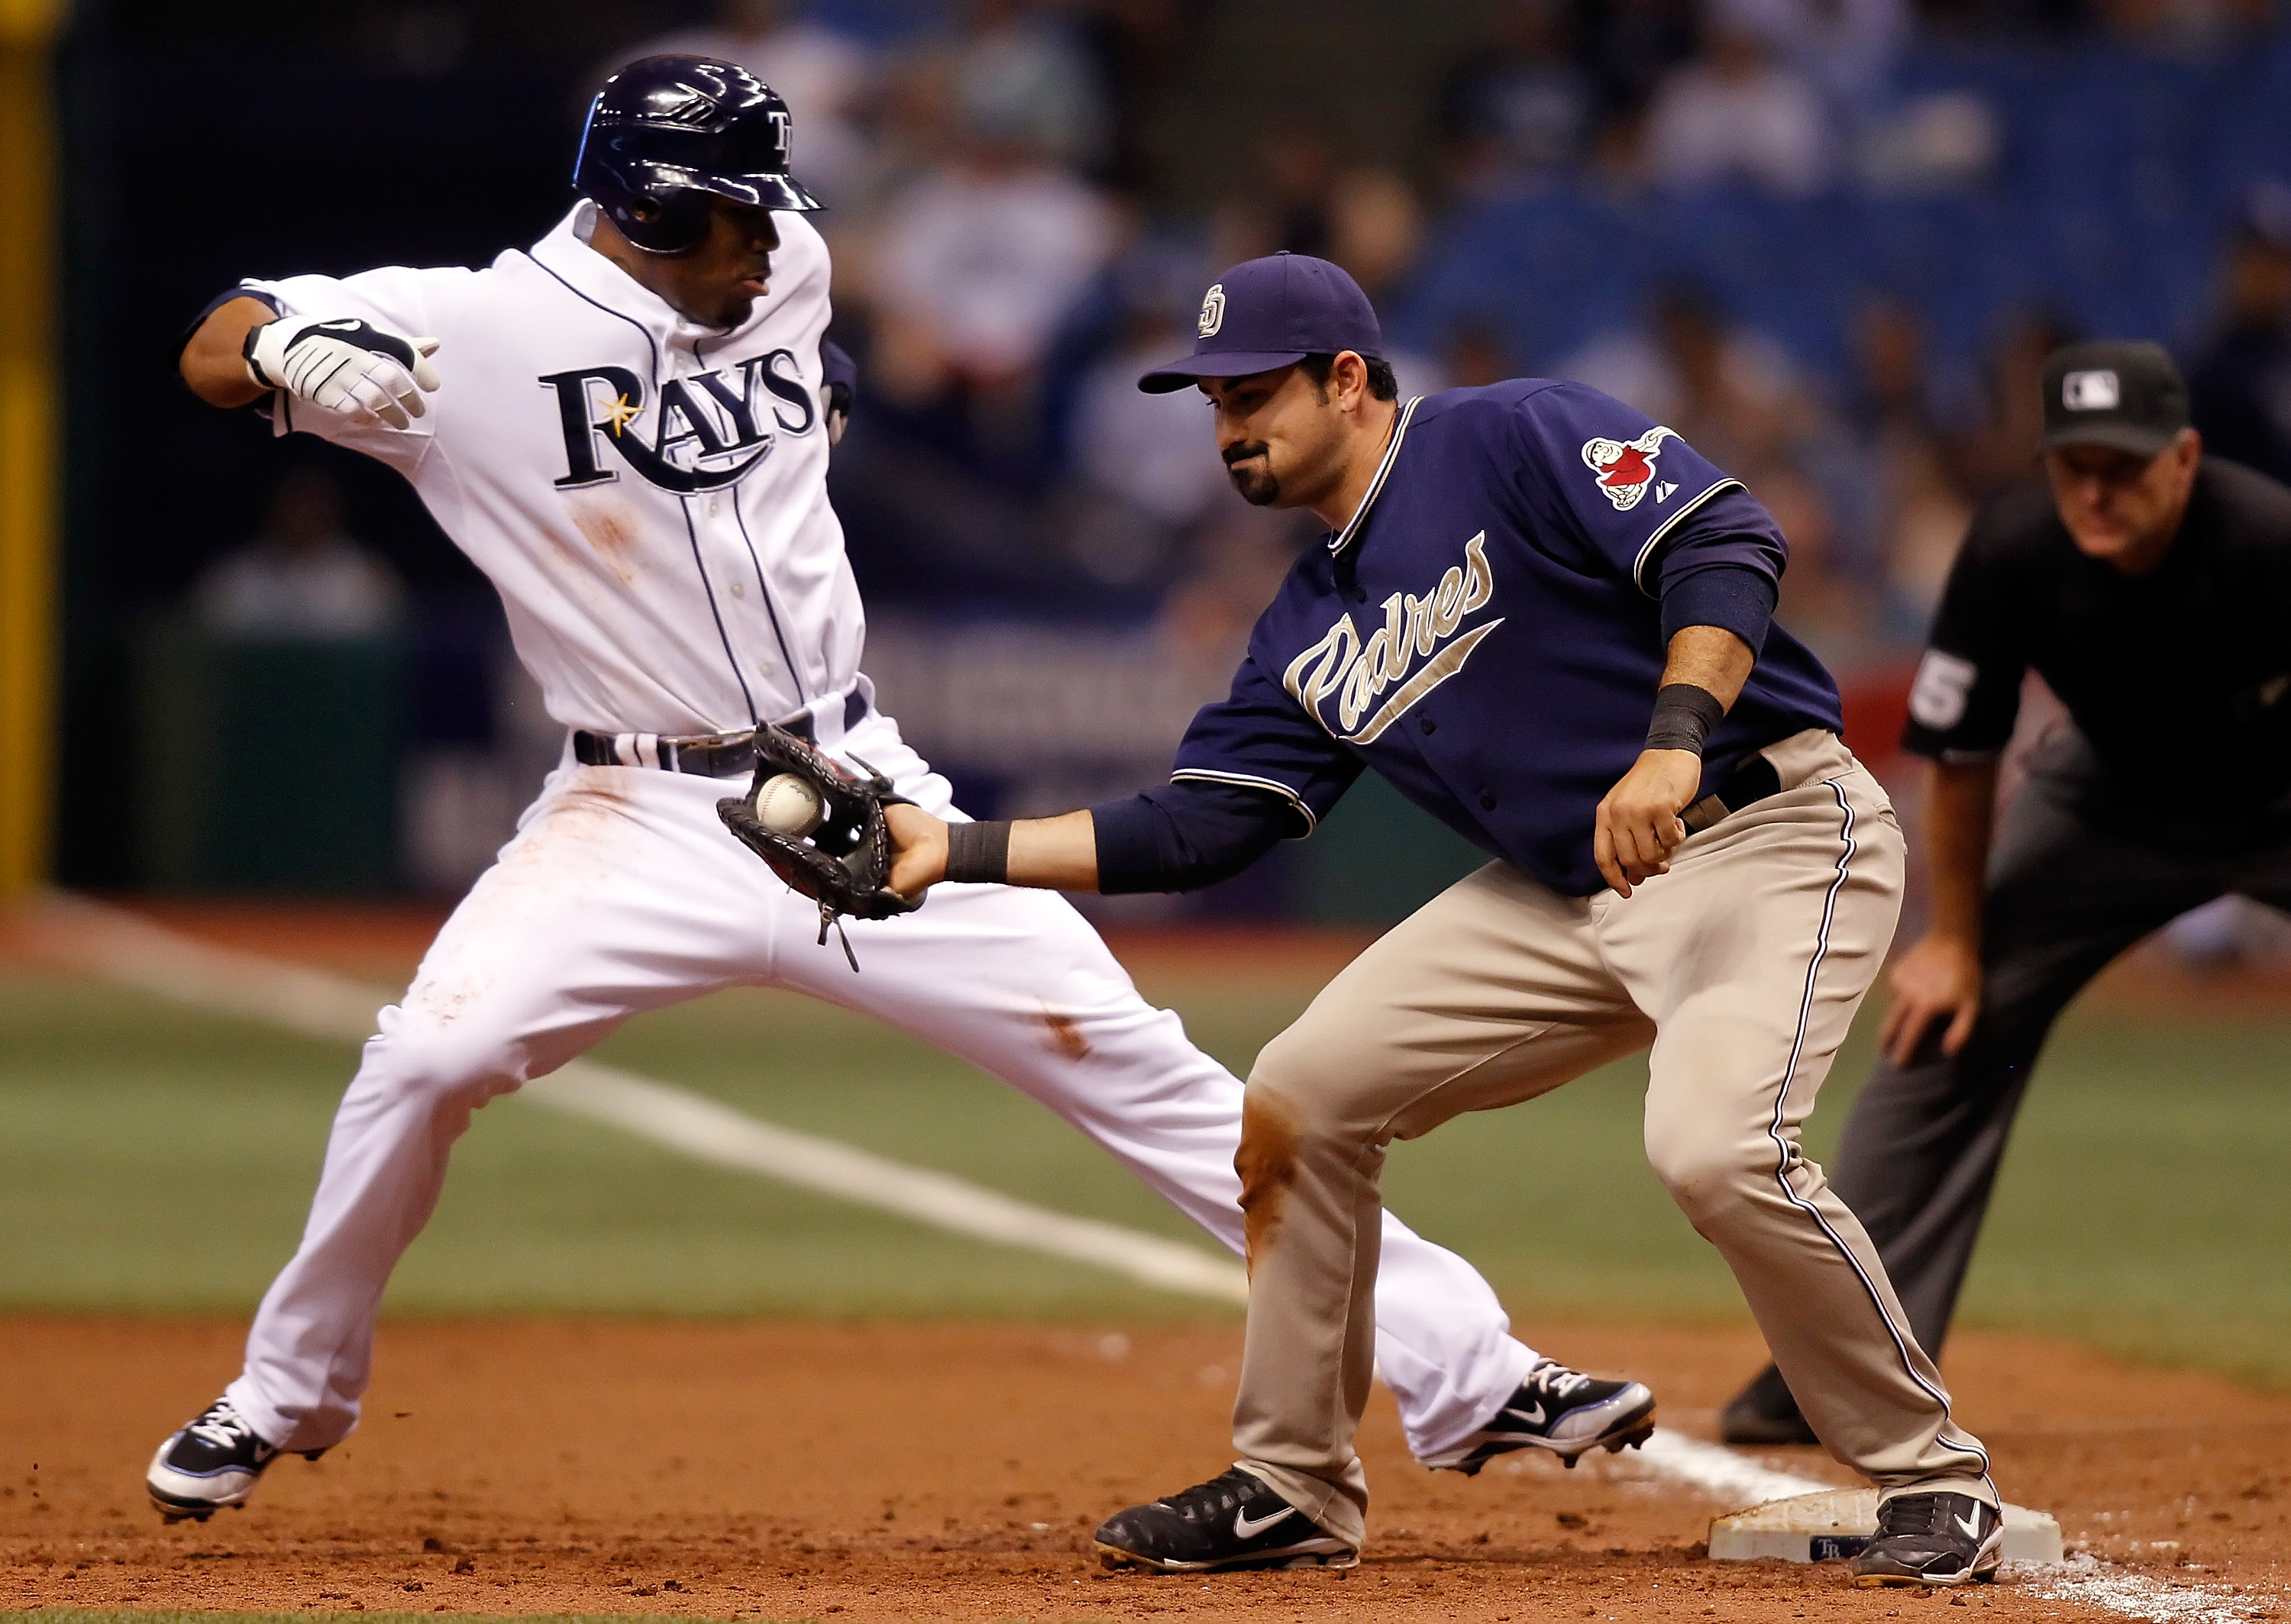 ST. PETERSBURG - JUNE 22:  Outfielder Carl Crawford #13 of the Tampa Bay Rays gets back to first safely as first baseman Adrian Gonzalez #23 of the San Diego Padres takes the throw during the game at Tropicana Field on June 22, 2010 in St. Petersburg, Flo